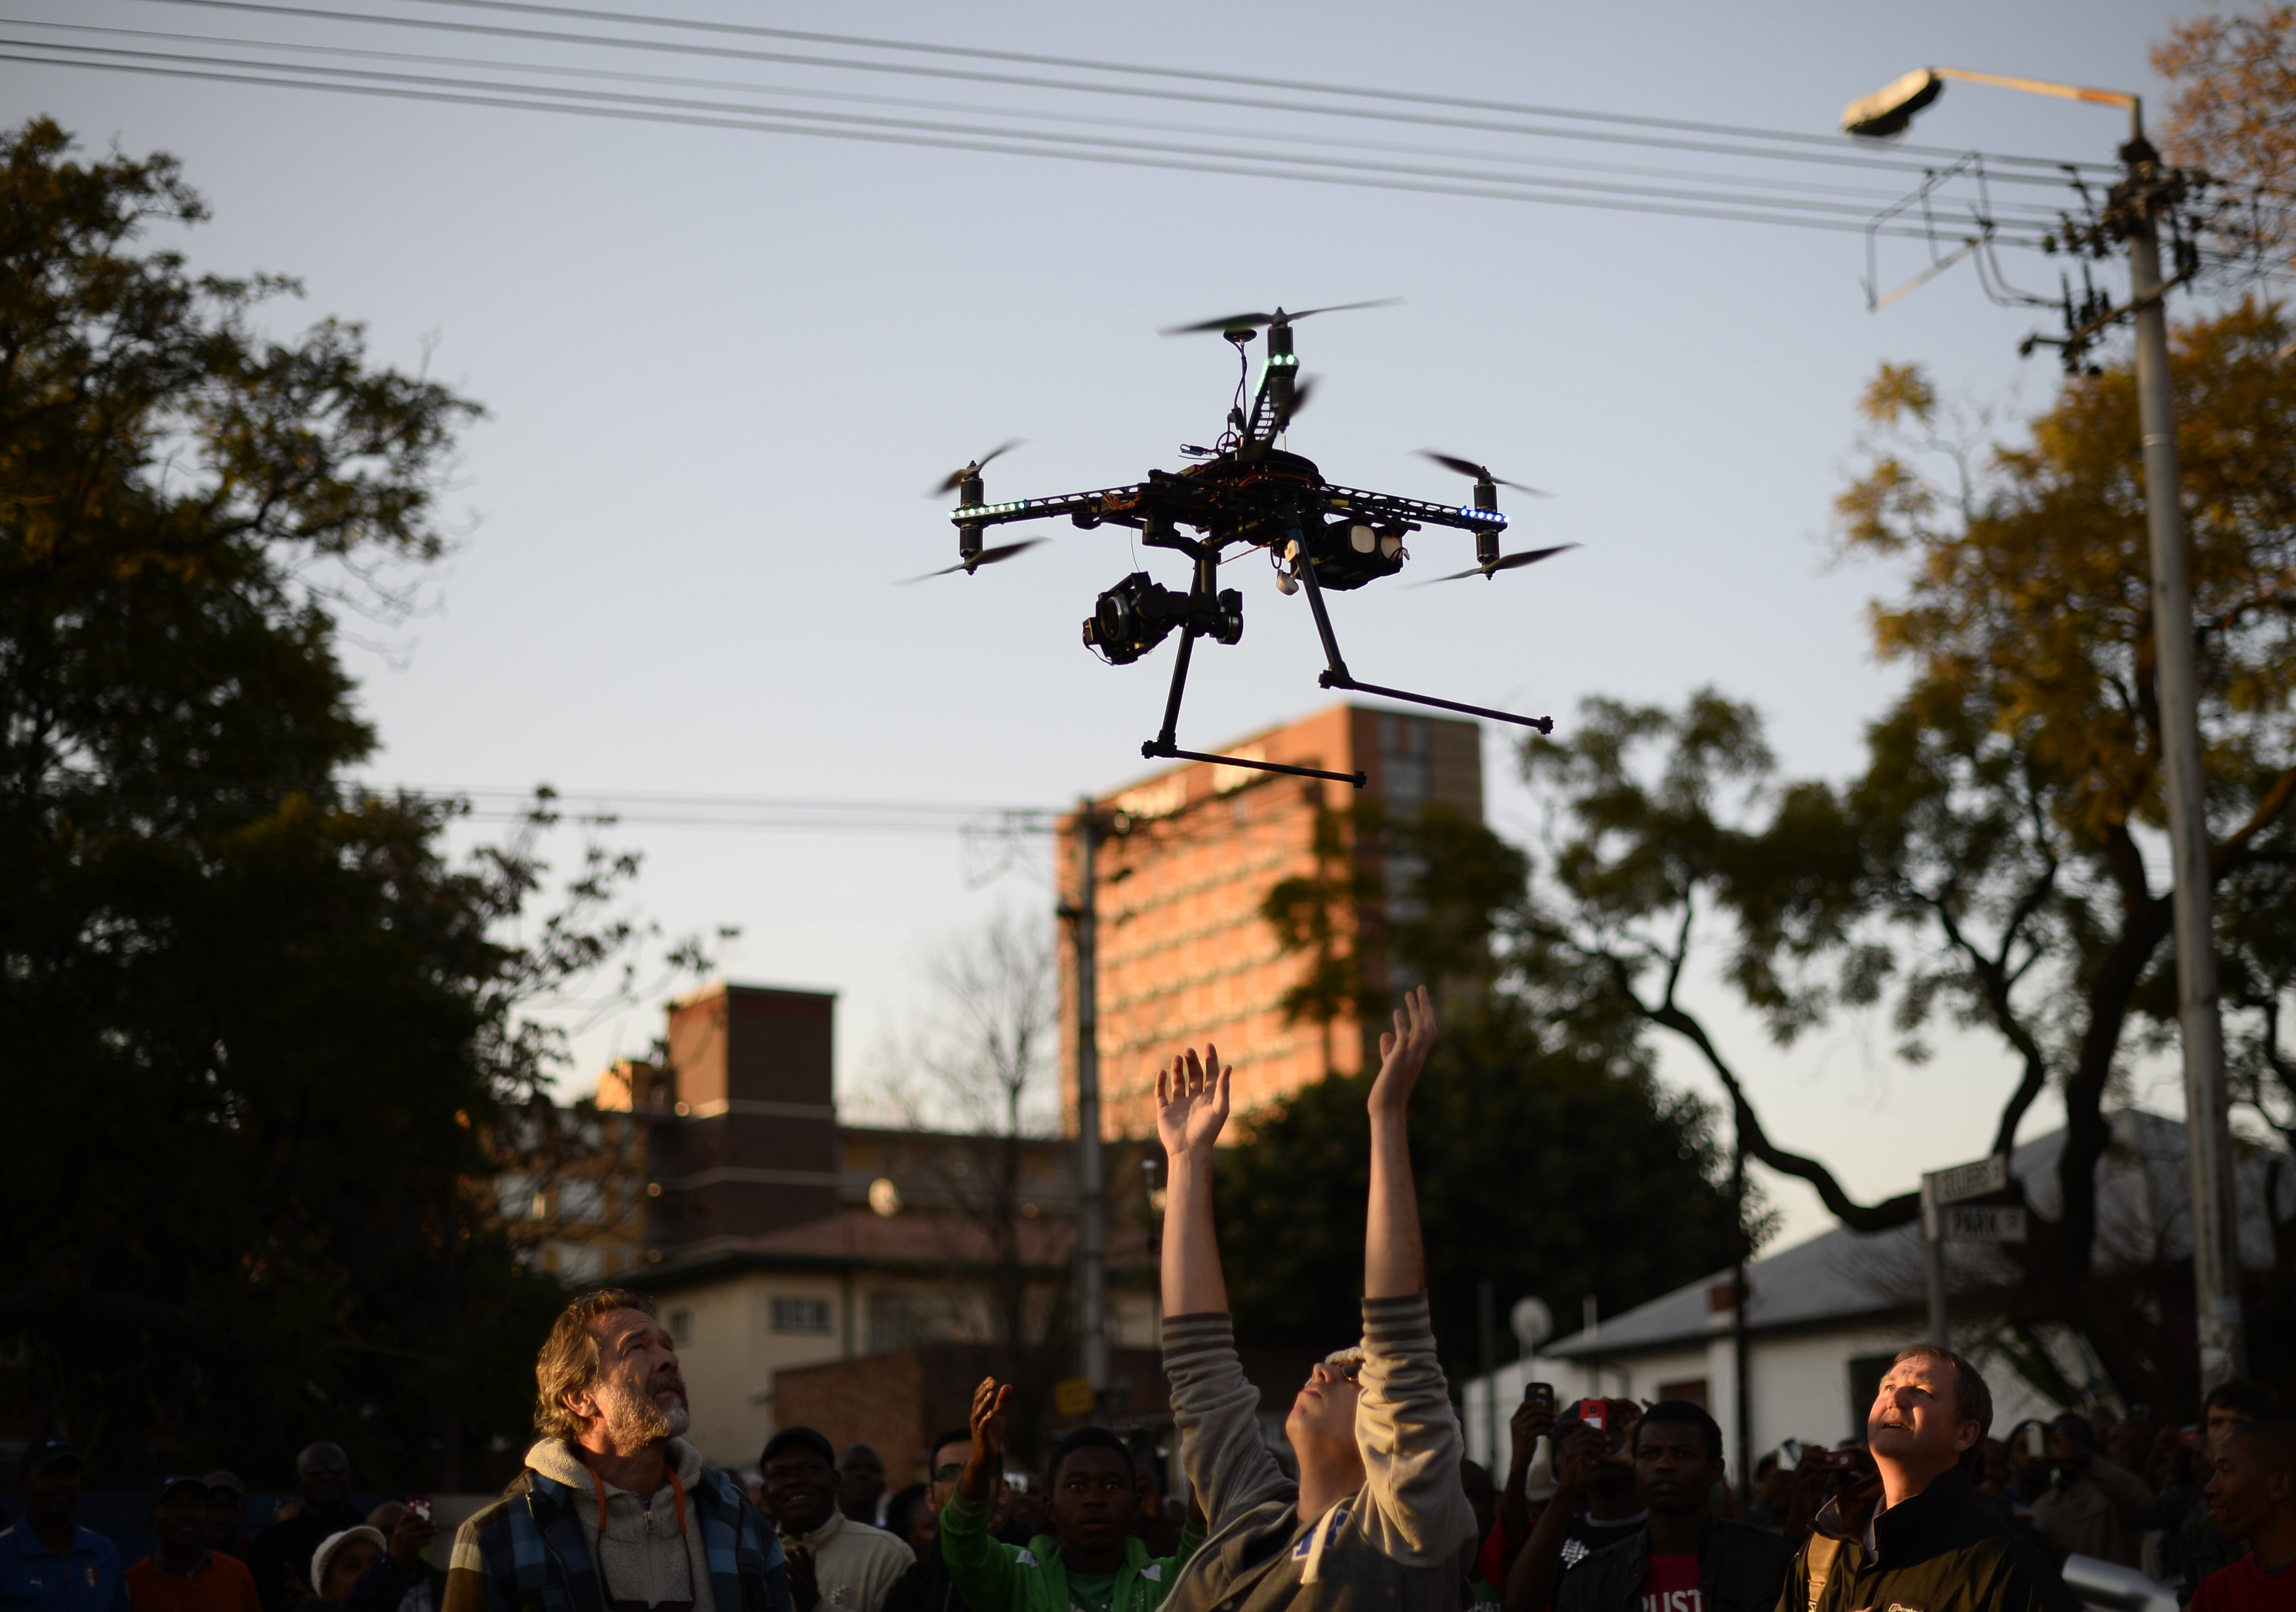 A man reaches out to catch a radio-controlled helicopter drone with a camera outside the clinic where Mandela is being treated in Pretoria